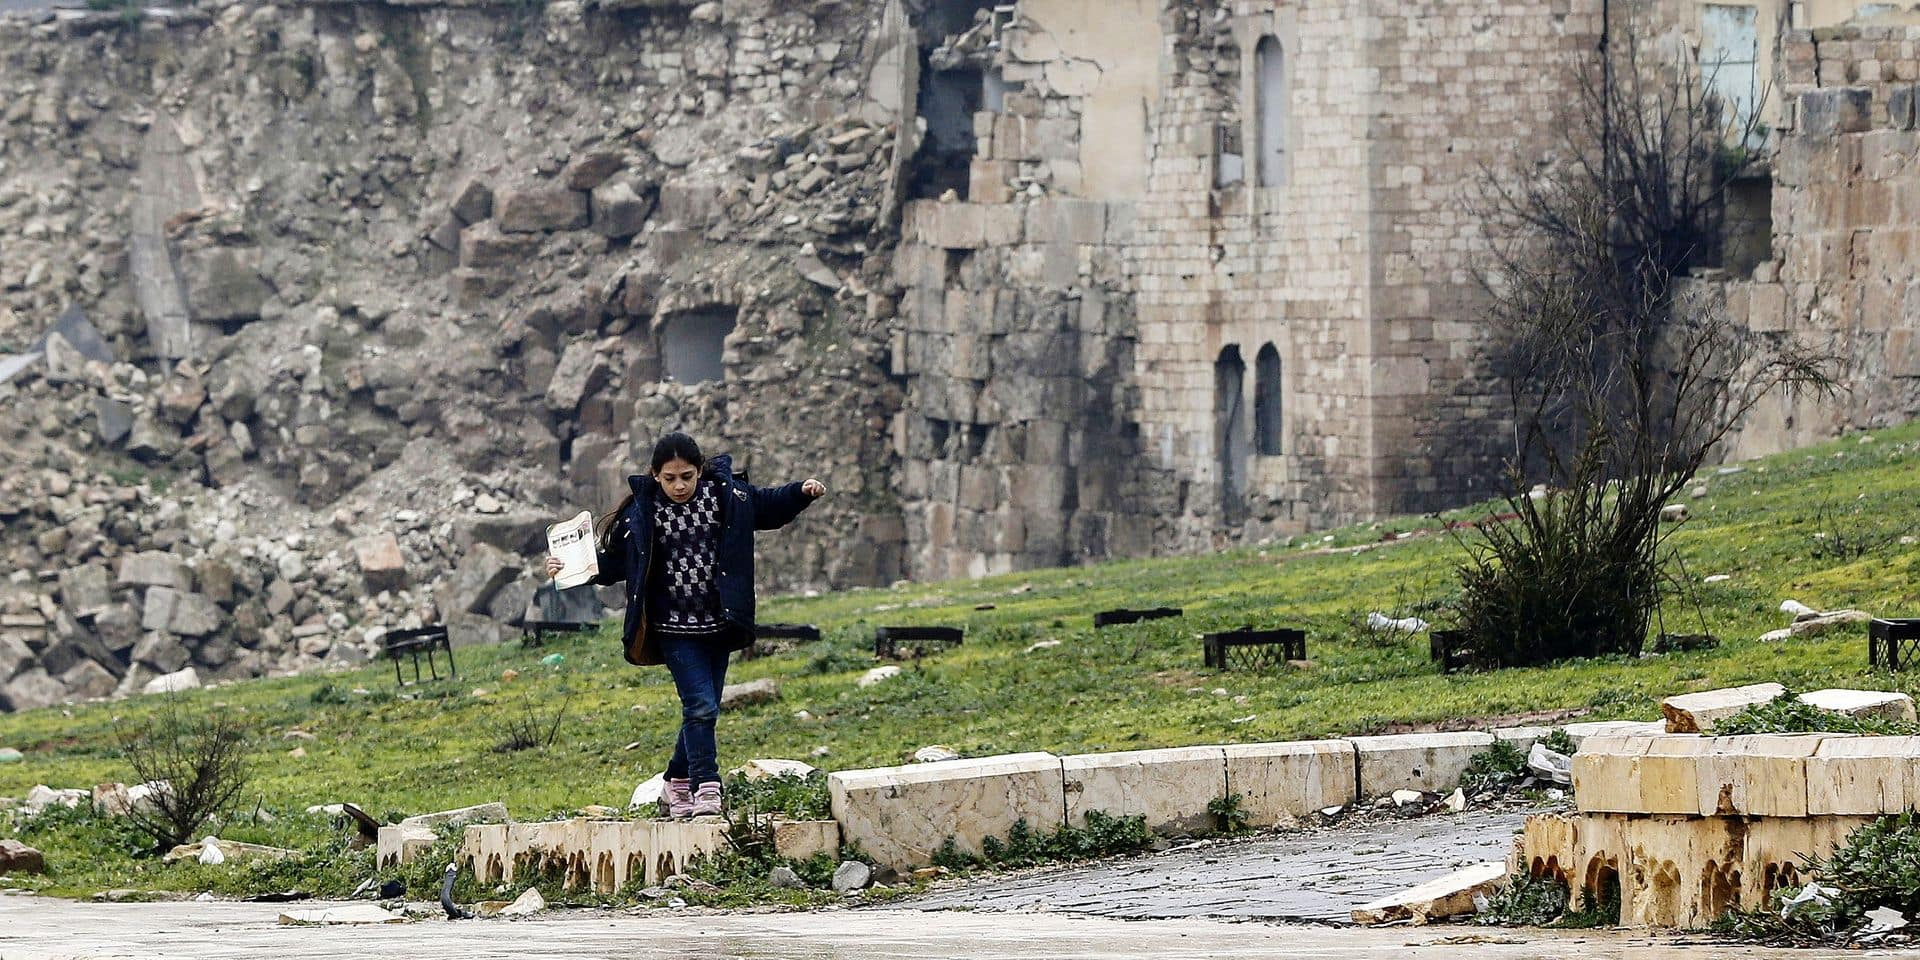 A Syrian girl plays in front of a destroyed building in the Bab al-Qinnasrin area in Aleppo's Old city, on February 10, 2019. (Photo by LOUAI BESHARA / AFP)